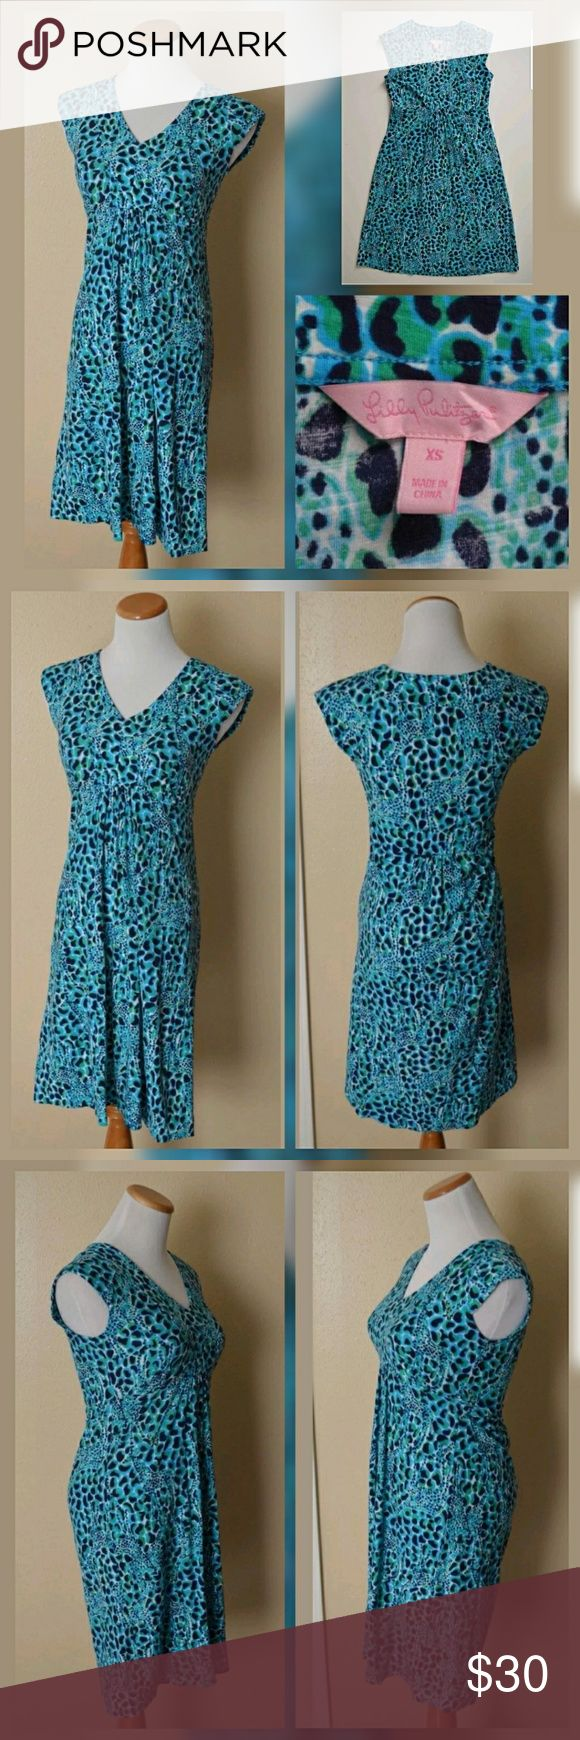 """Lilly Pulitzer Garnet Dress Giraffe sz xs For your consideration is a Lilly Pulitzer """"Garnet Dress"""" in size extra small. Giraffe print. Blue, green, and white multi-color print. V-neck. Cap sleeve. 100% cotton.  Excellent condition!   Measurements laying flat:  Bust (armpit to armpit): 15.75""""  Waist: 13.75""""  Hips: approx 16.5  Bottom hem width: 23.25""""  Total length (top of shoulder to bottom hem): 35.25"""" Lilly Pulitzer Dresses"""